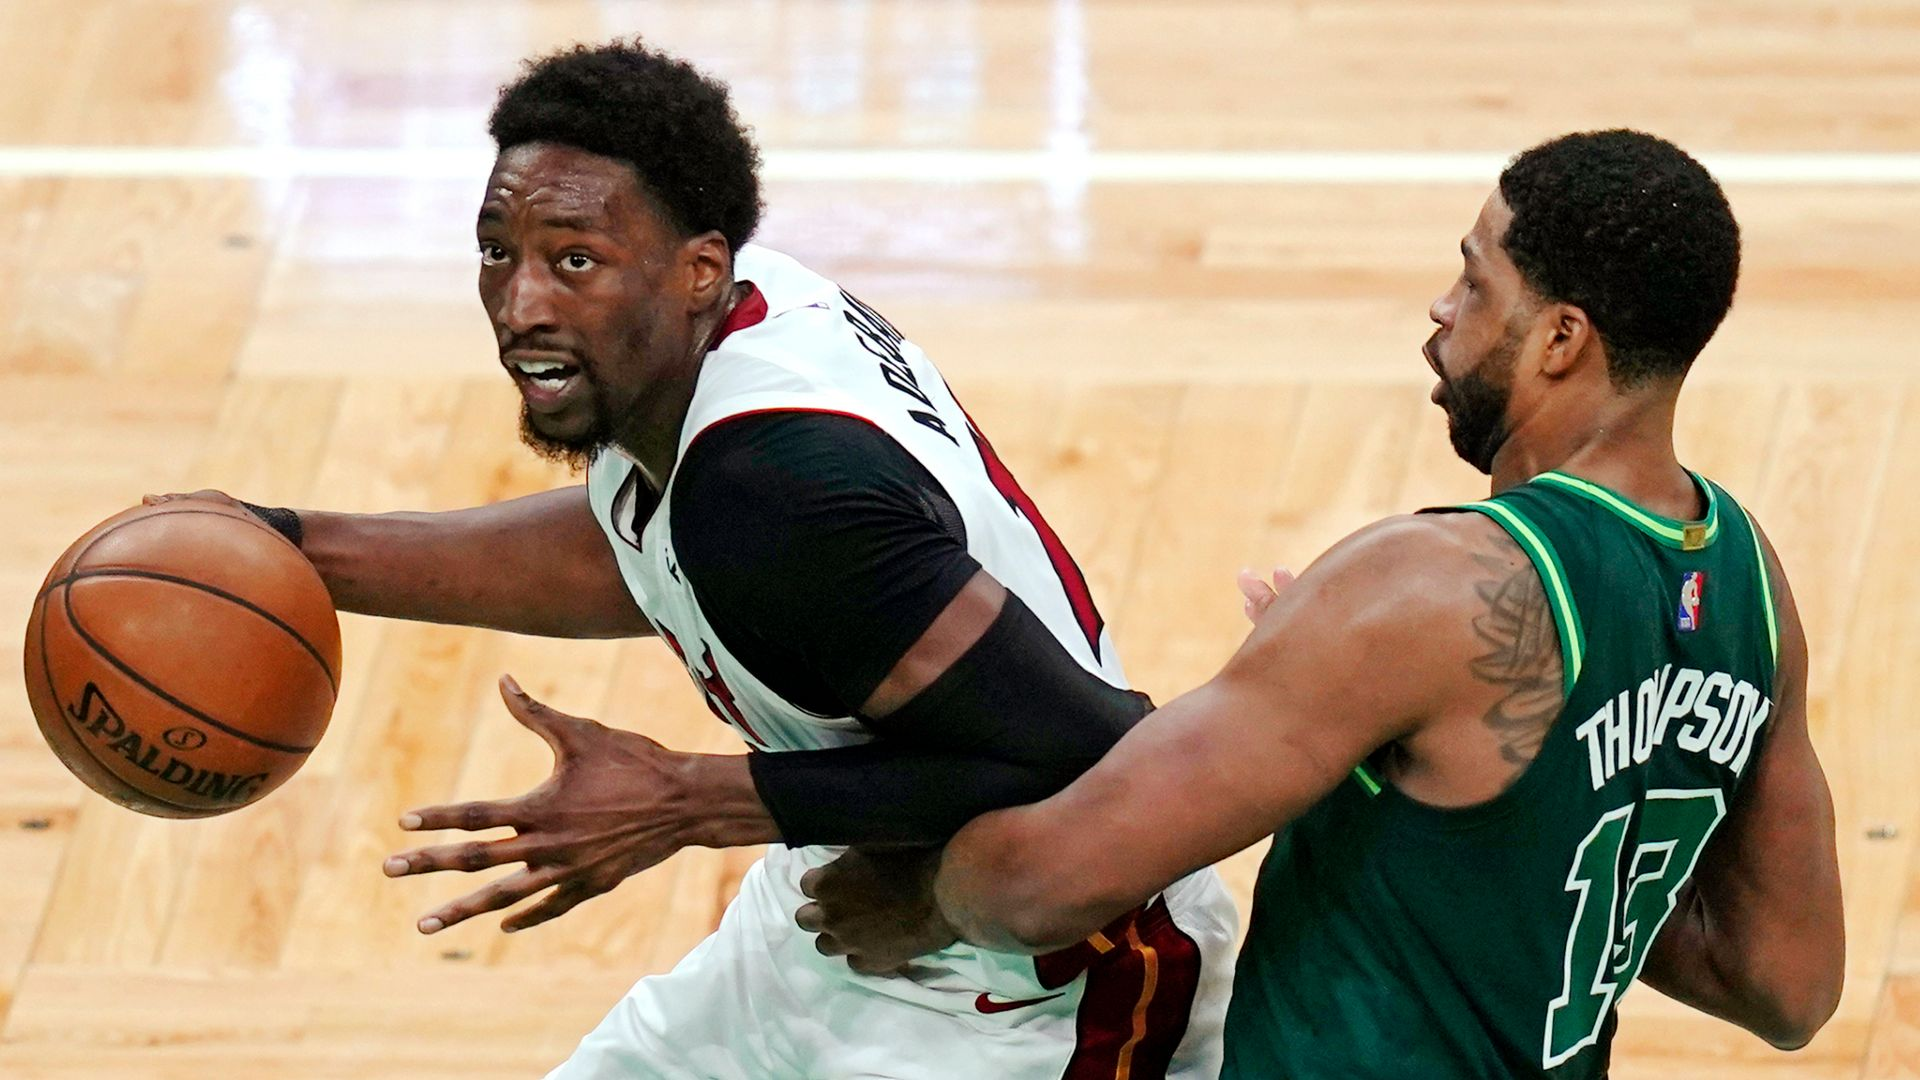 Miami Heat clinch playoff spot at Celtics' expense with victory in Boston | NBA